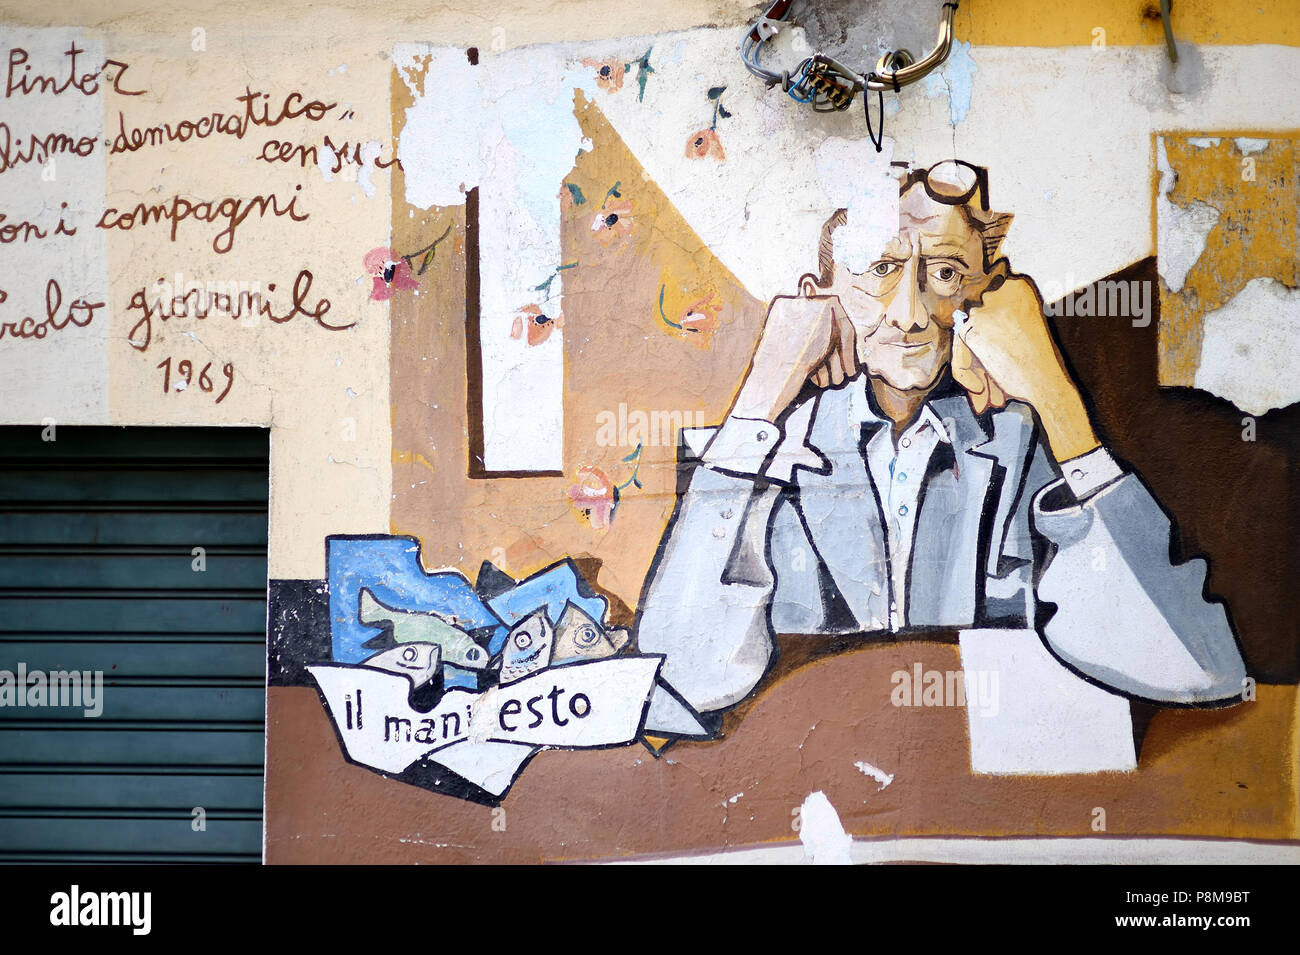 ORGOSOLO, ITALY - MAY 21, 2014: Murals wall paintings about political and historical facts in Orgosolo, Sardinia, Italy Stock Photo